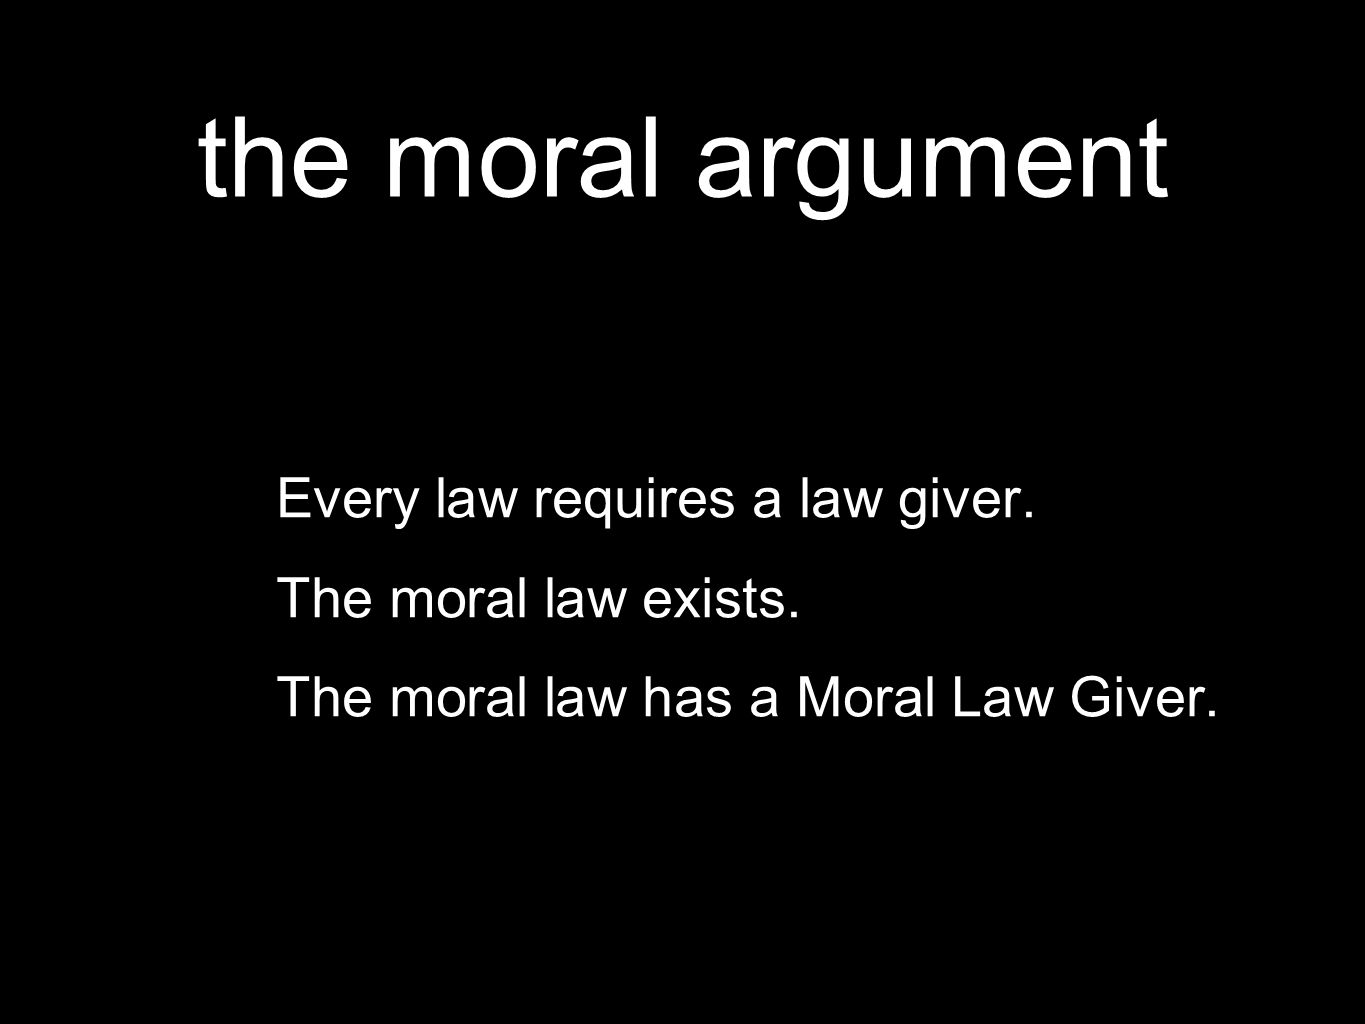 the moral argument Every law requires a law giver.